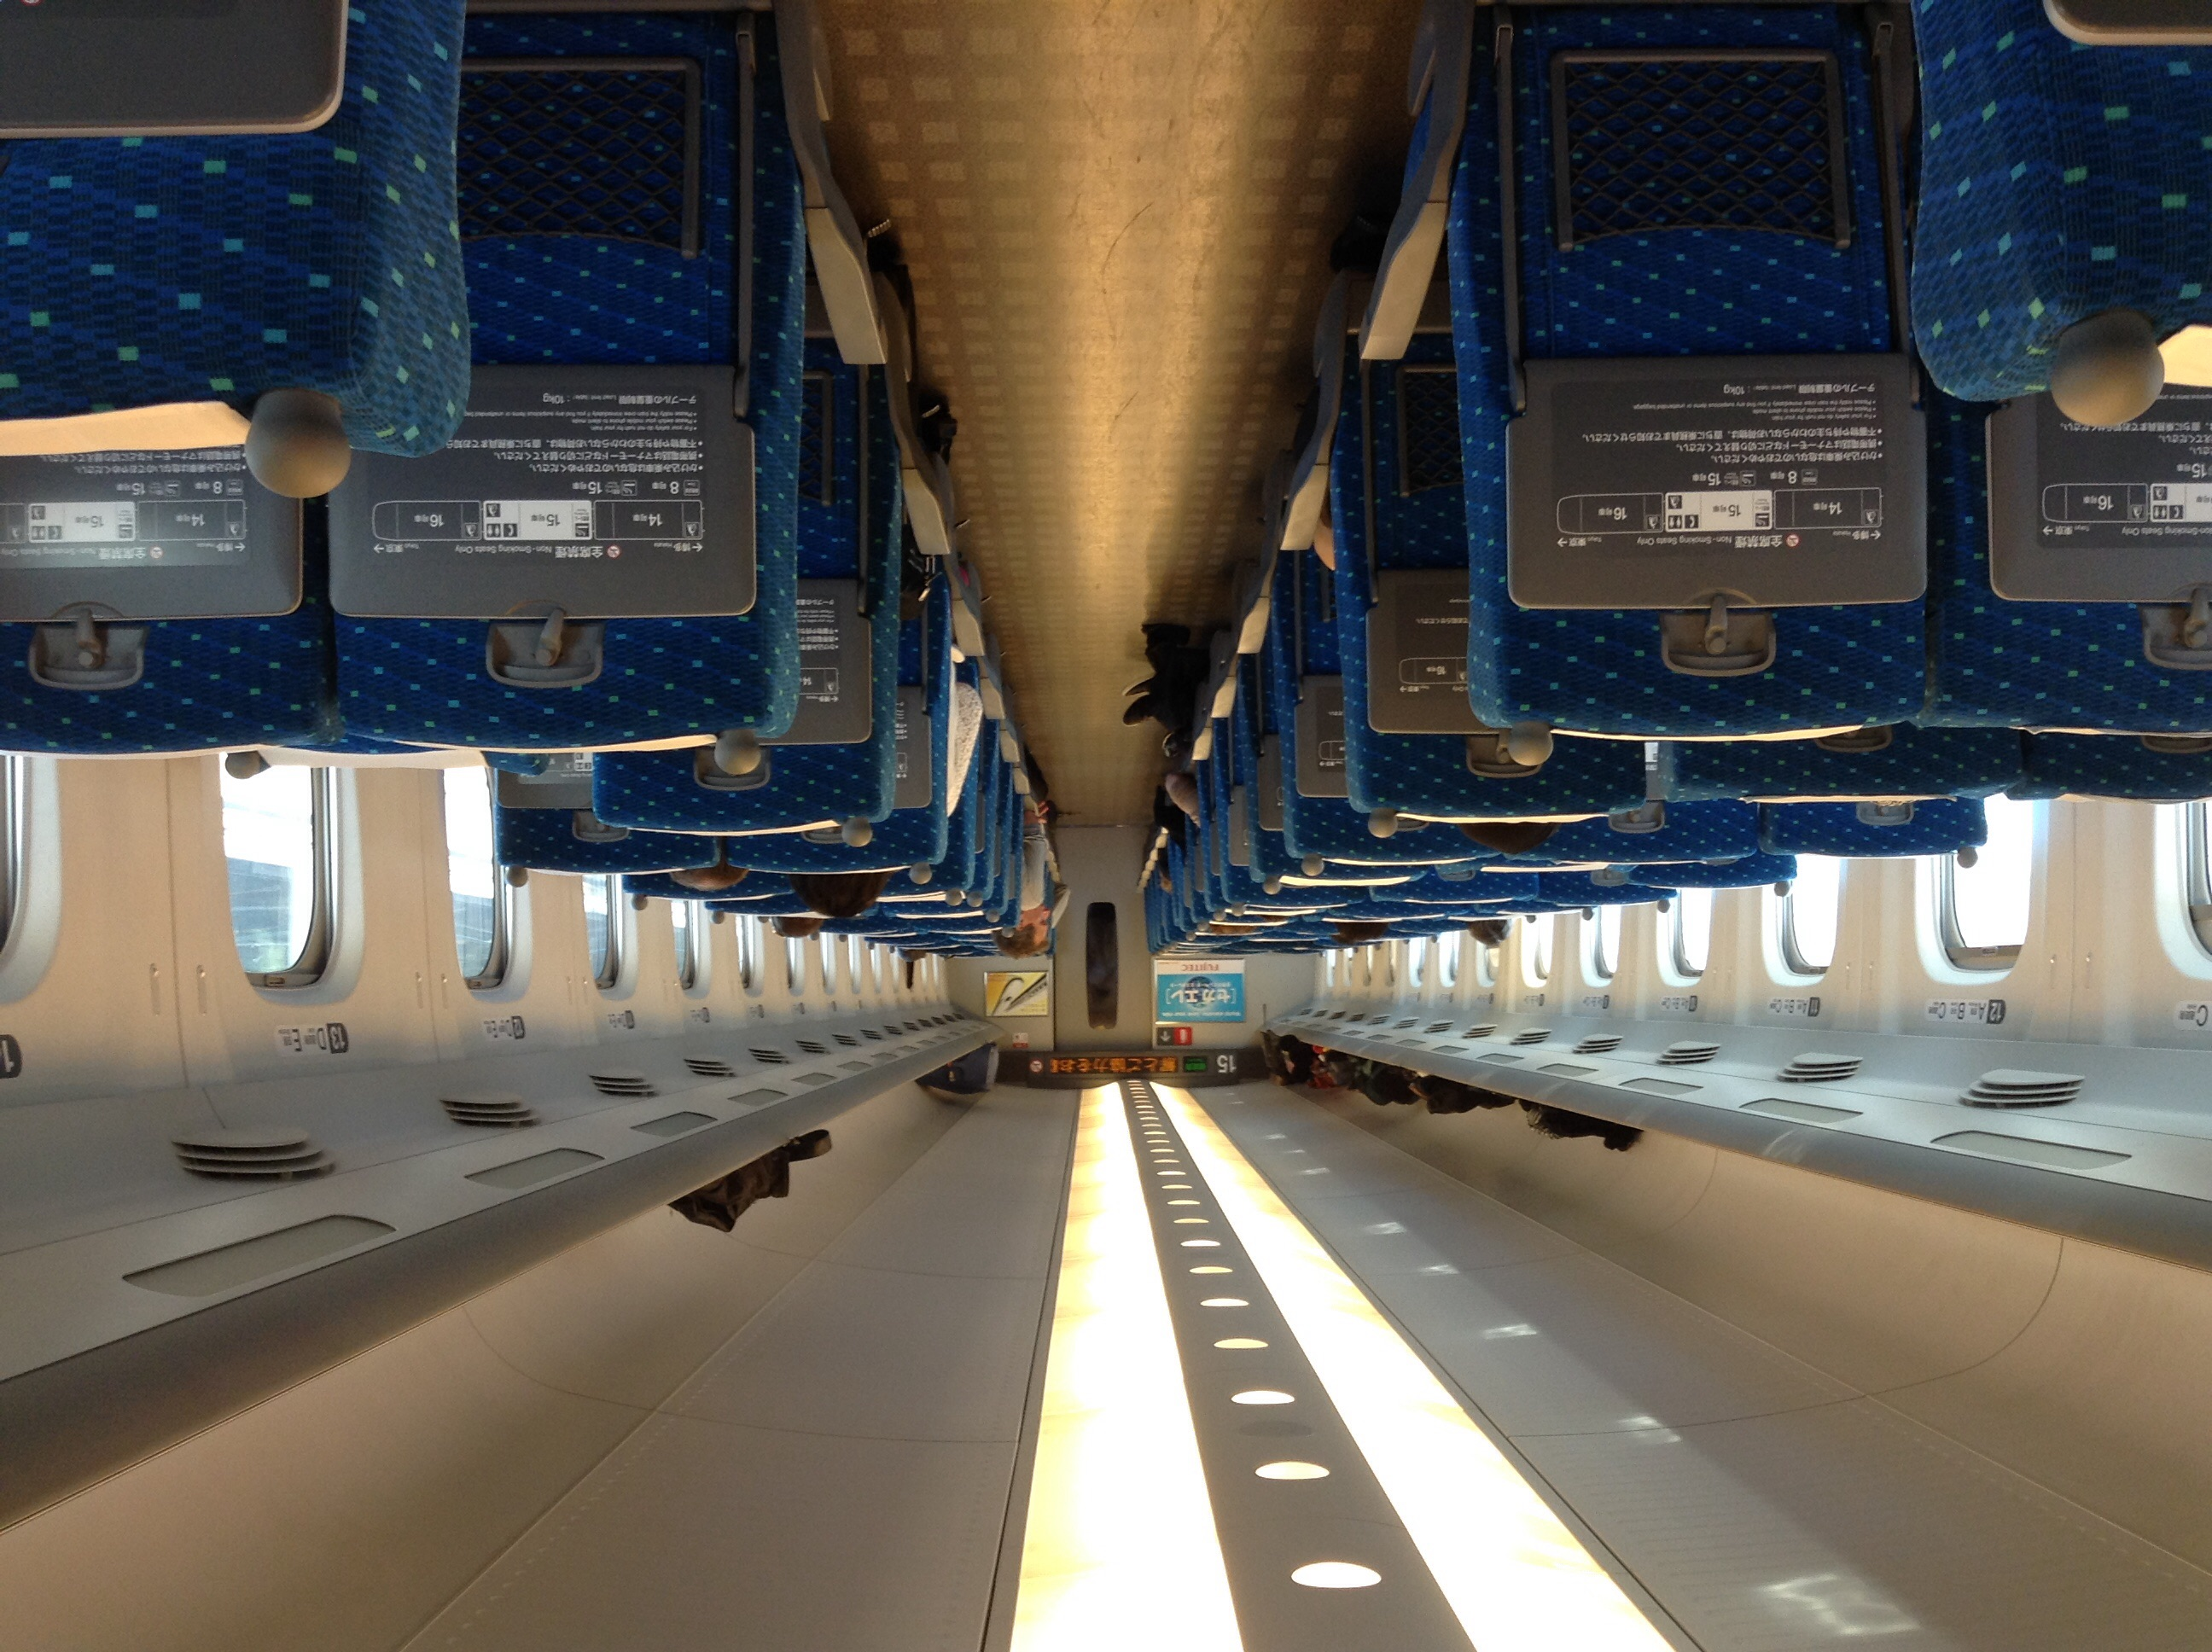 Shinkansen bullet train Japan standard class